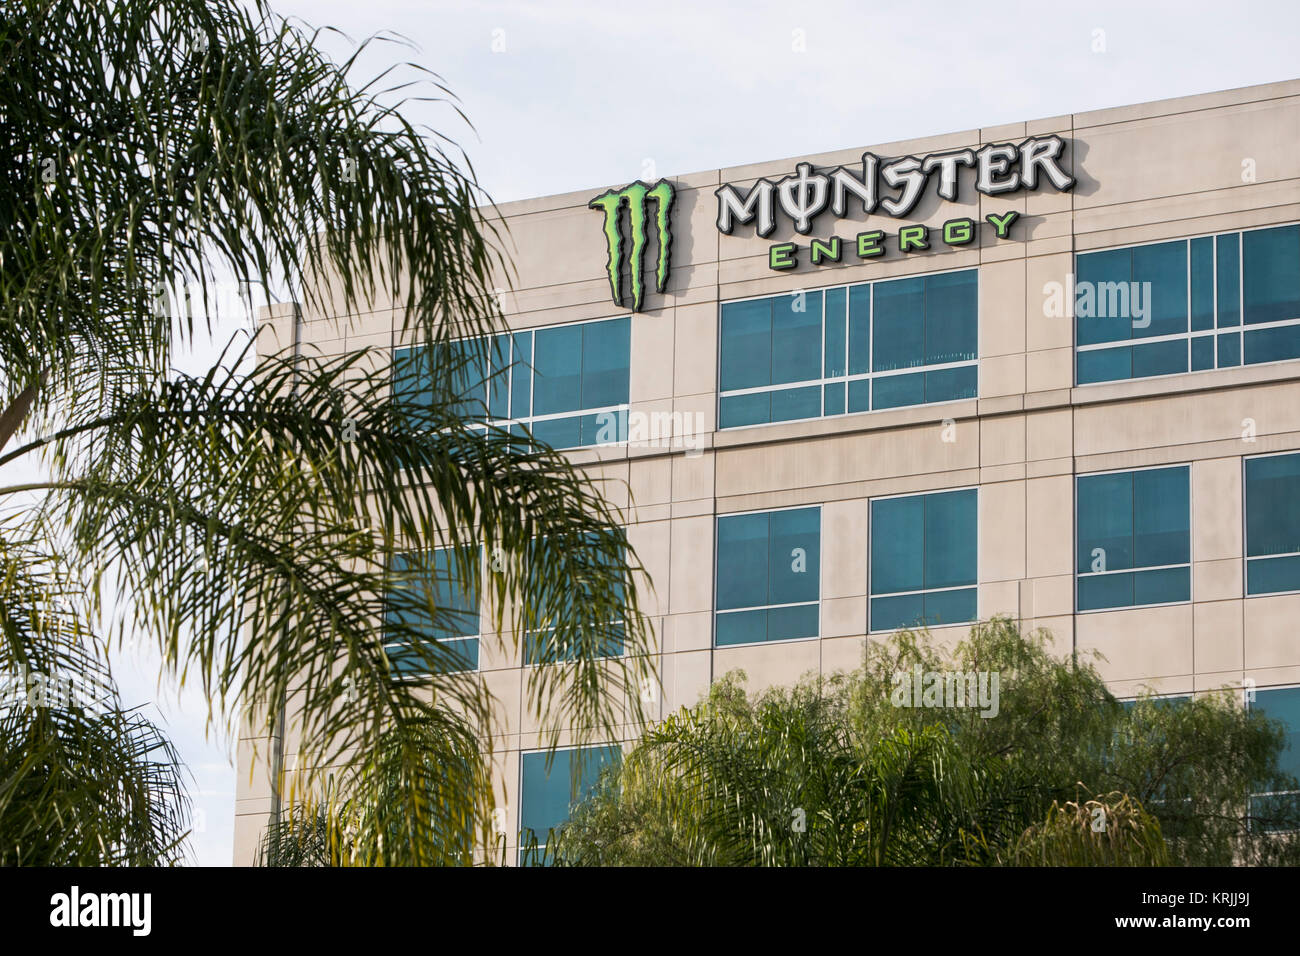 a logo sign outside of the headquarters of the monster beverage